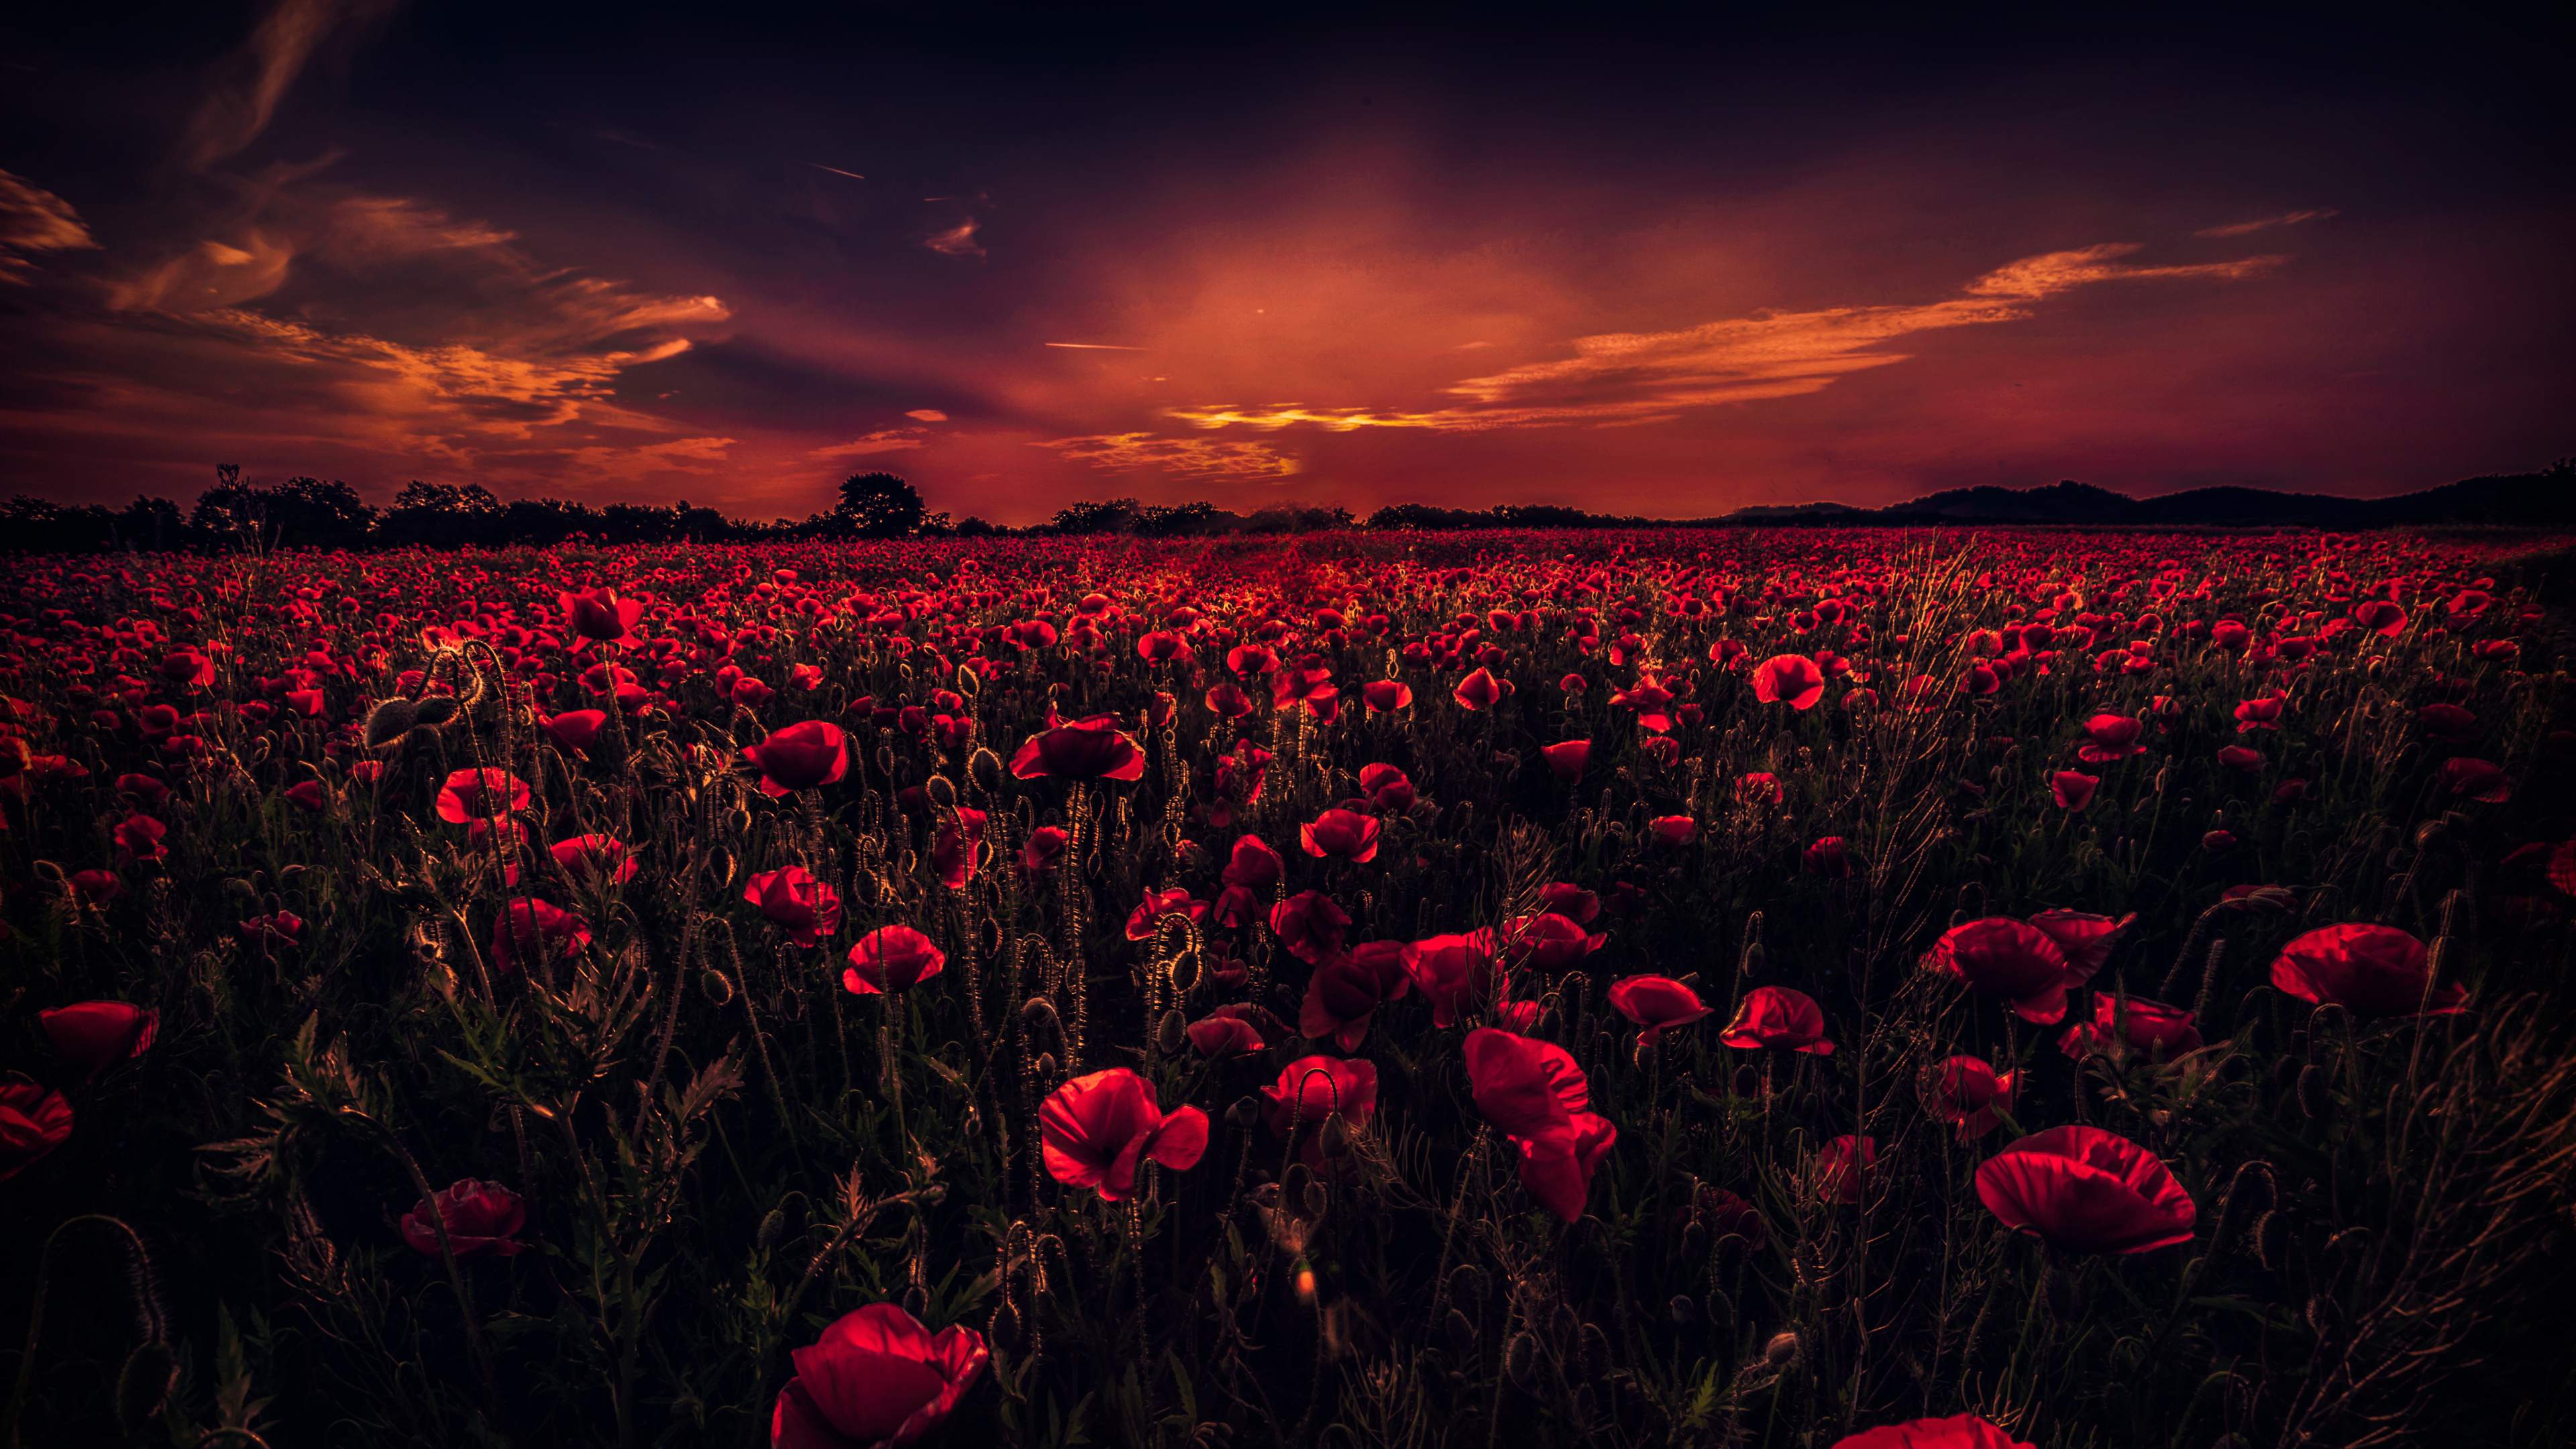 field of poppies uhd 4k wallpaper